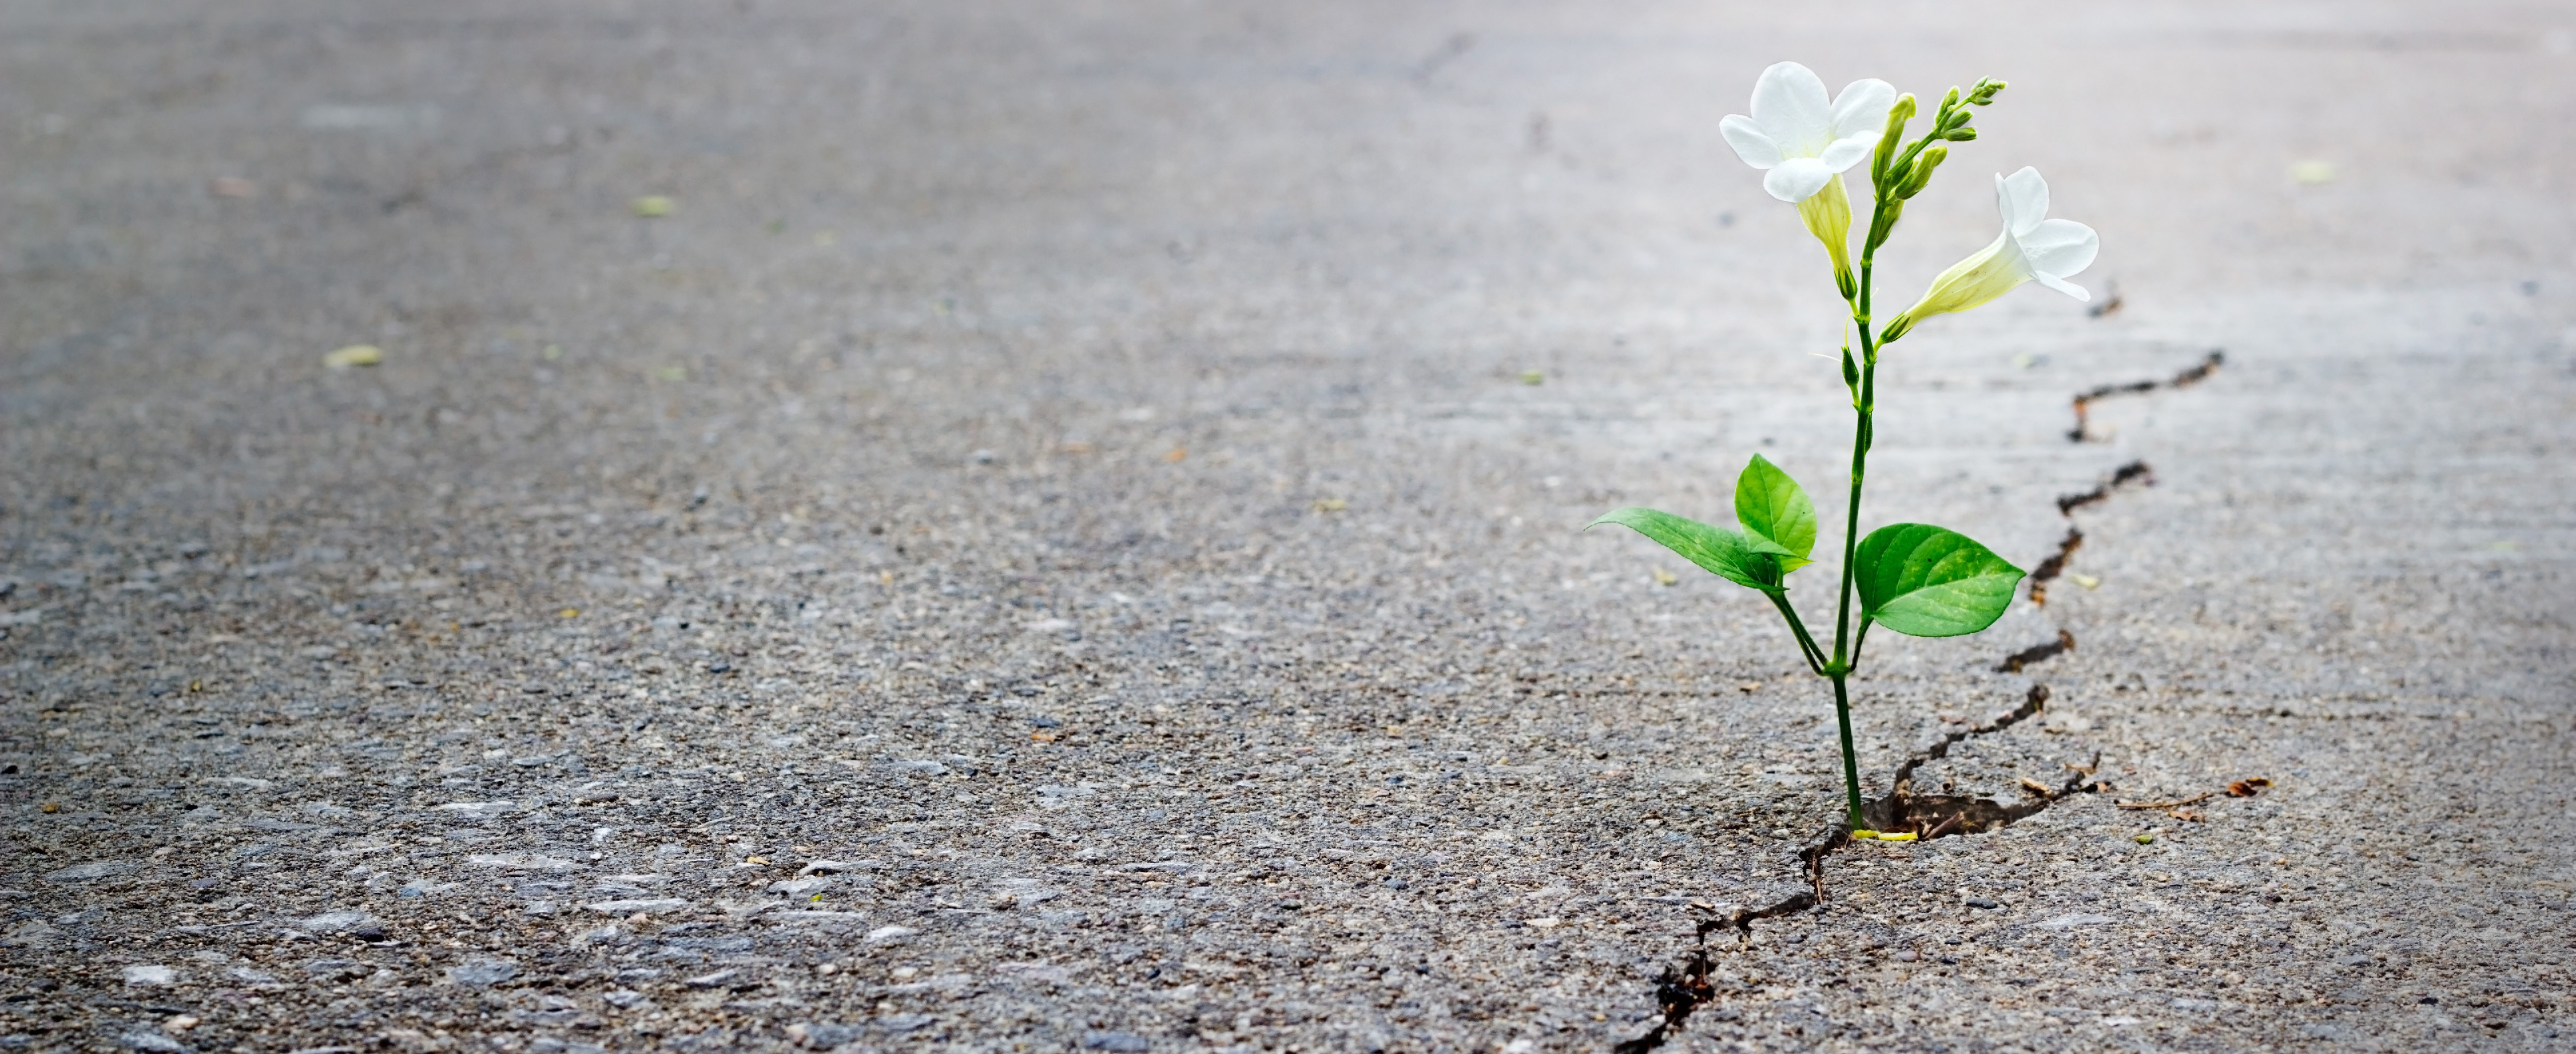 A flower growing in a crack in the cement